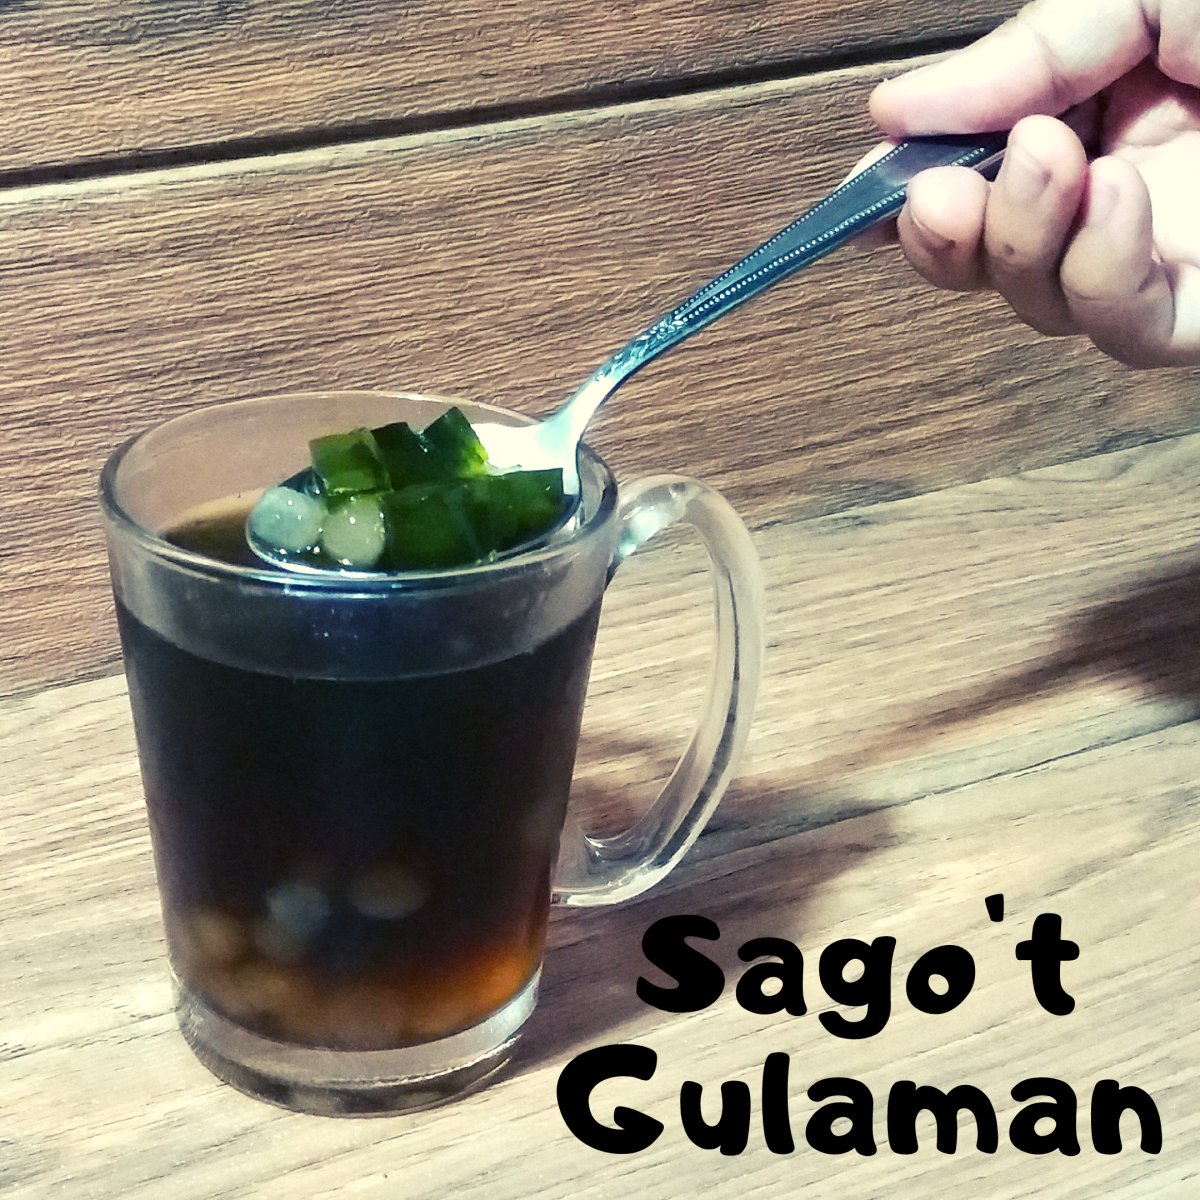 Learn how to make sago't gulaman, a popular Filipino drink